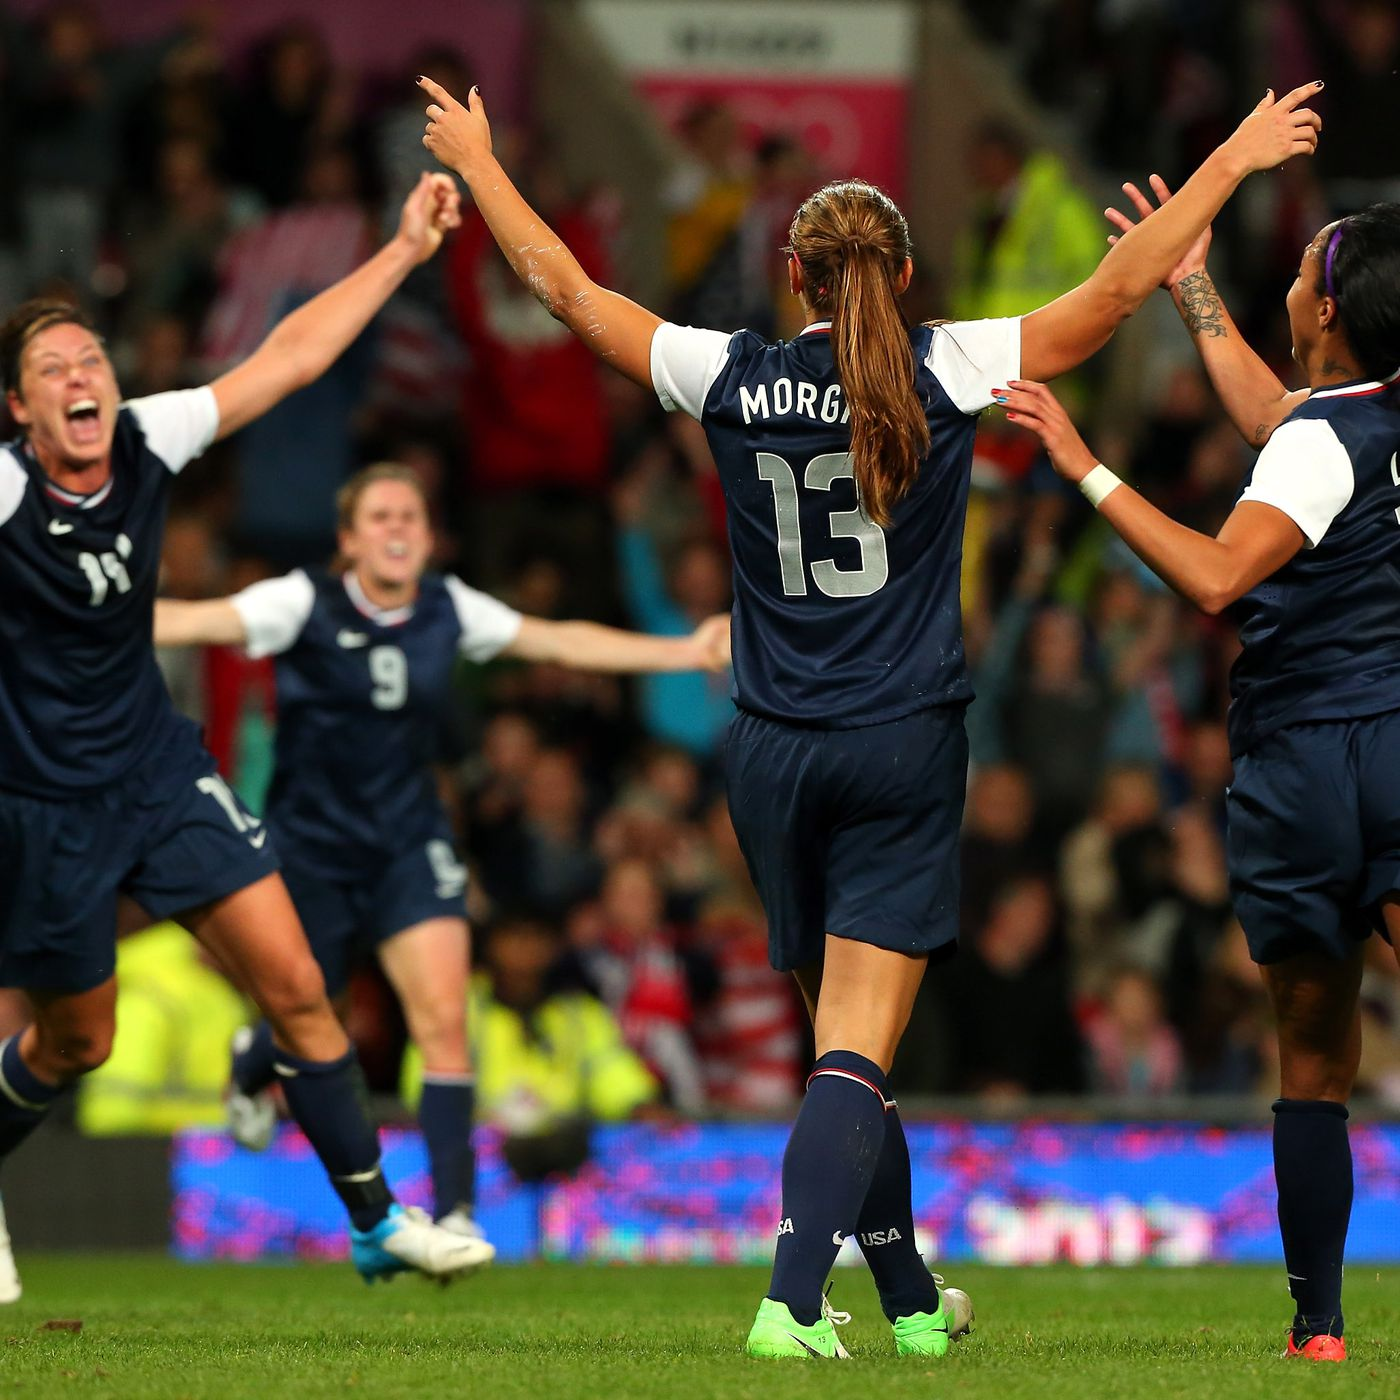 e7bdd04c458 Throwback Thursday: Alex Morgan beats Canada in the 123rd minute - Stars  and Stripes FC